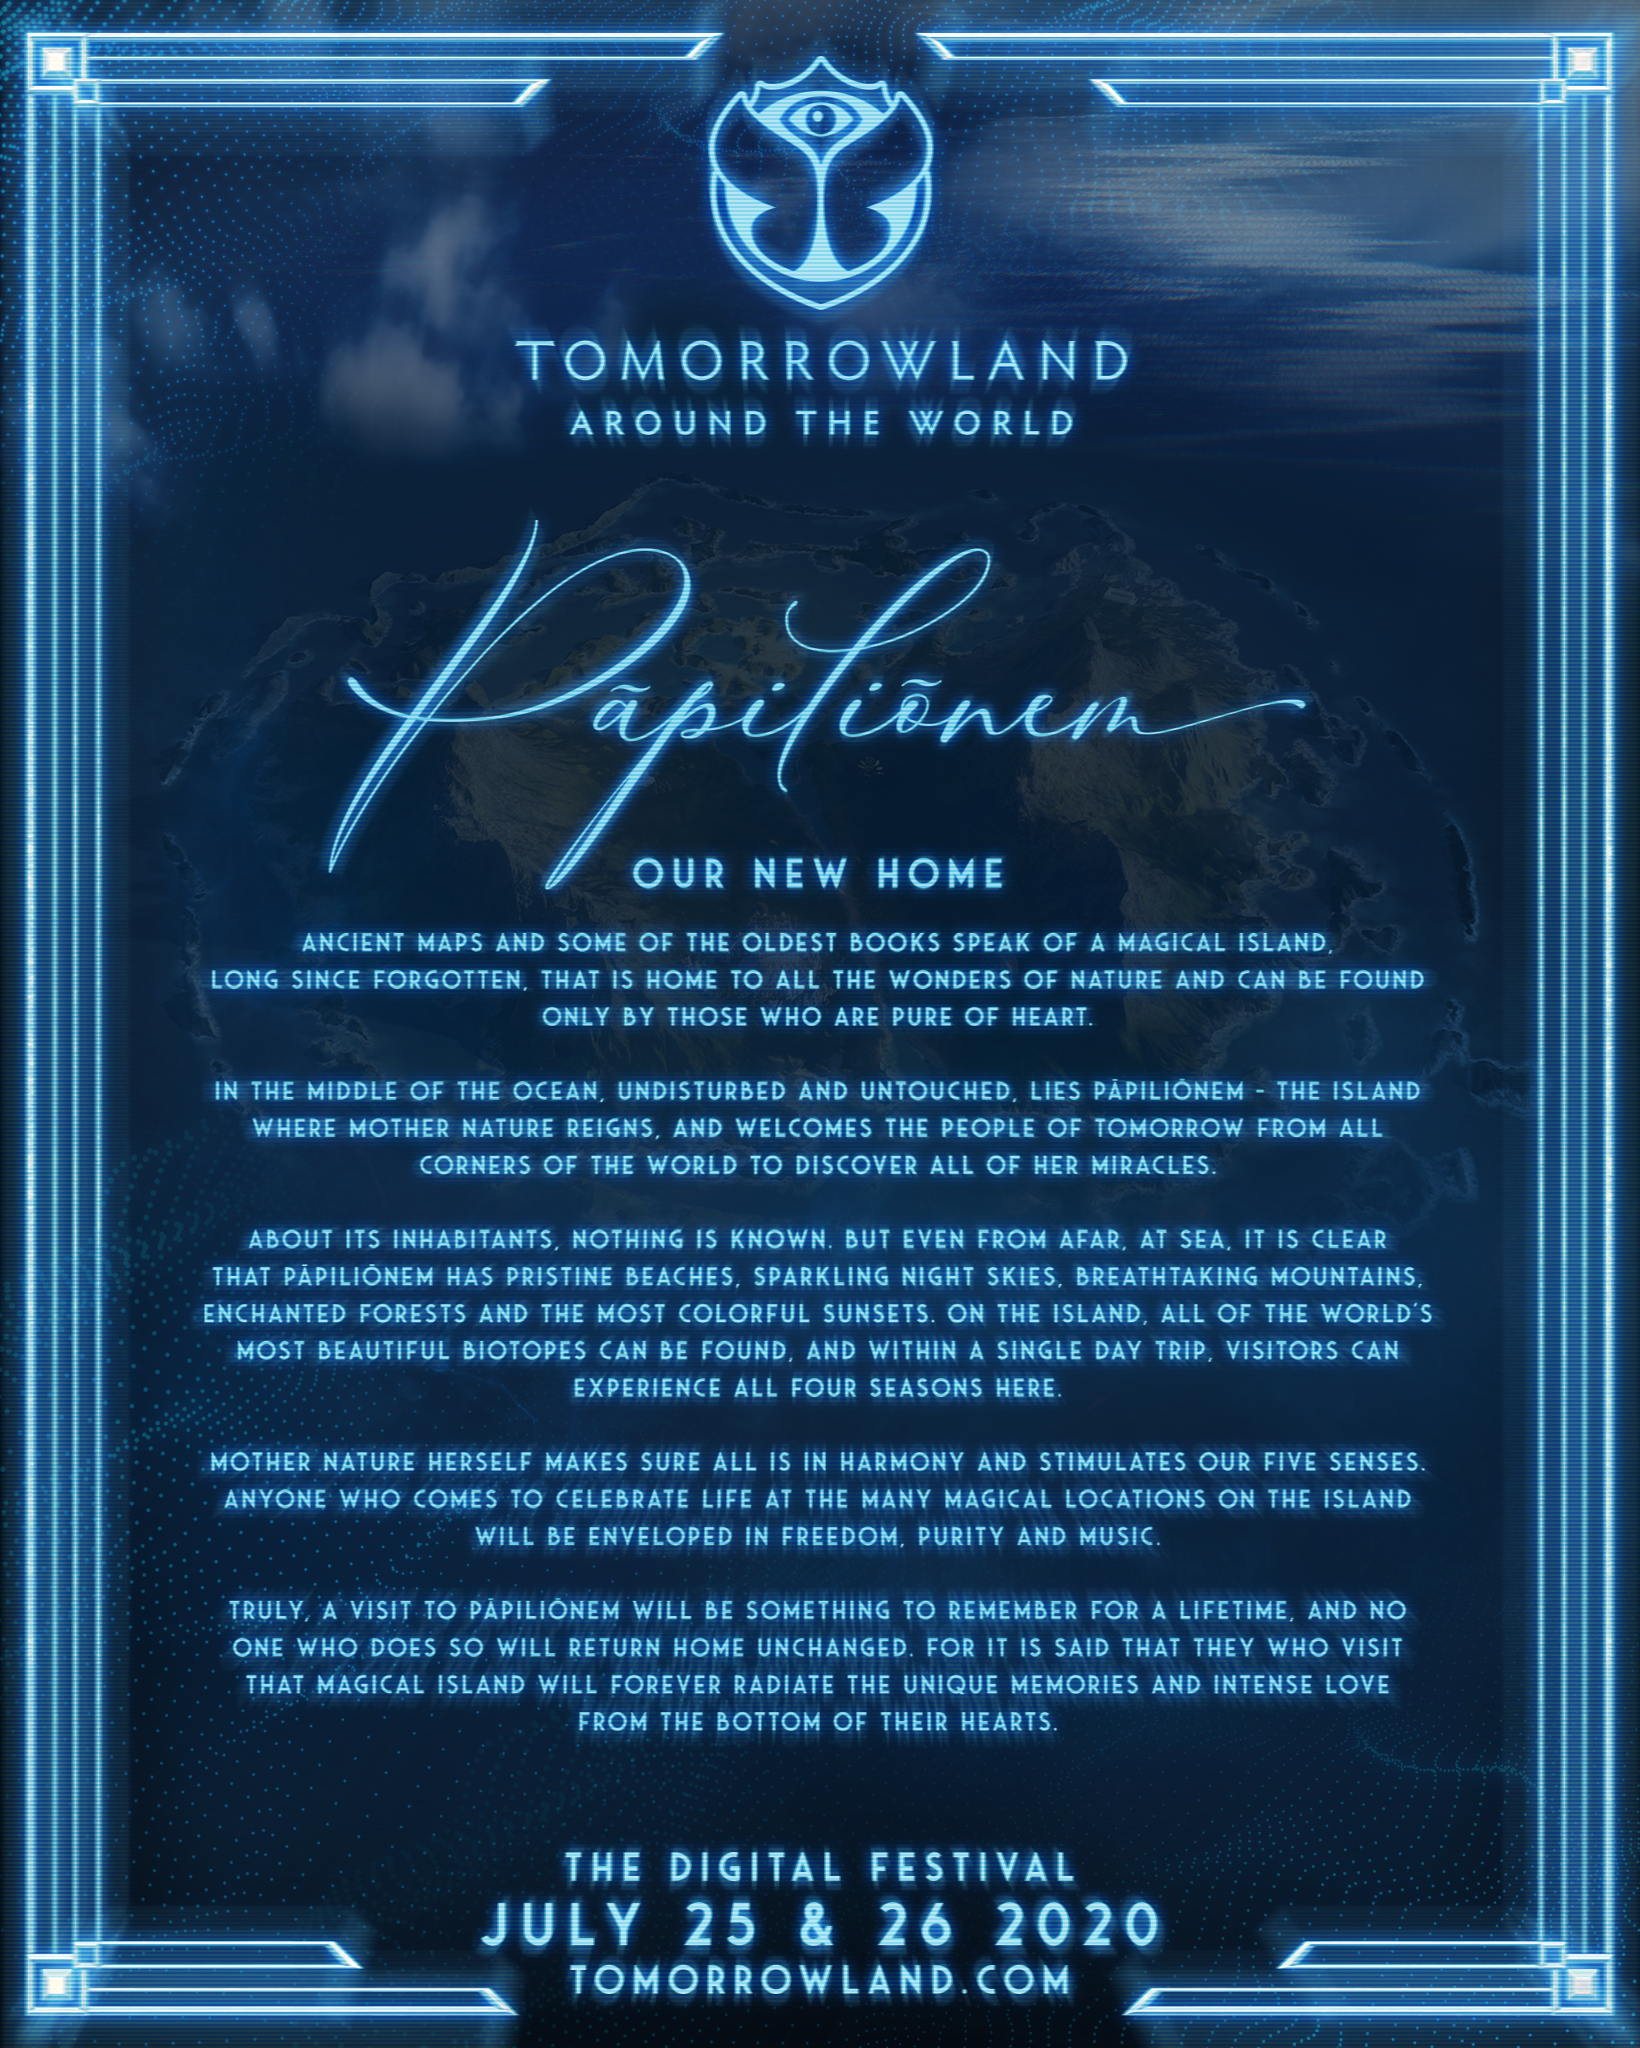 The magical island Pāpiliōnem will welcome the People of Tomorrow during Tomorrowland Around the World, the digital festival !